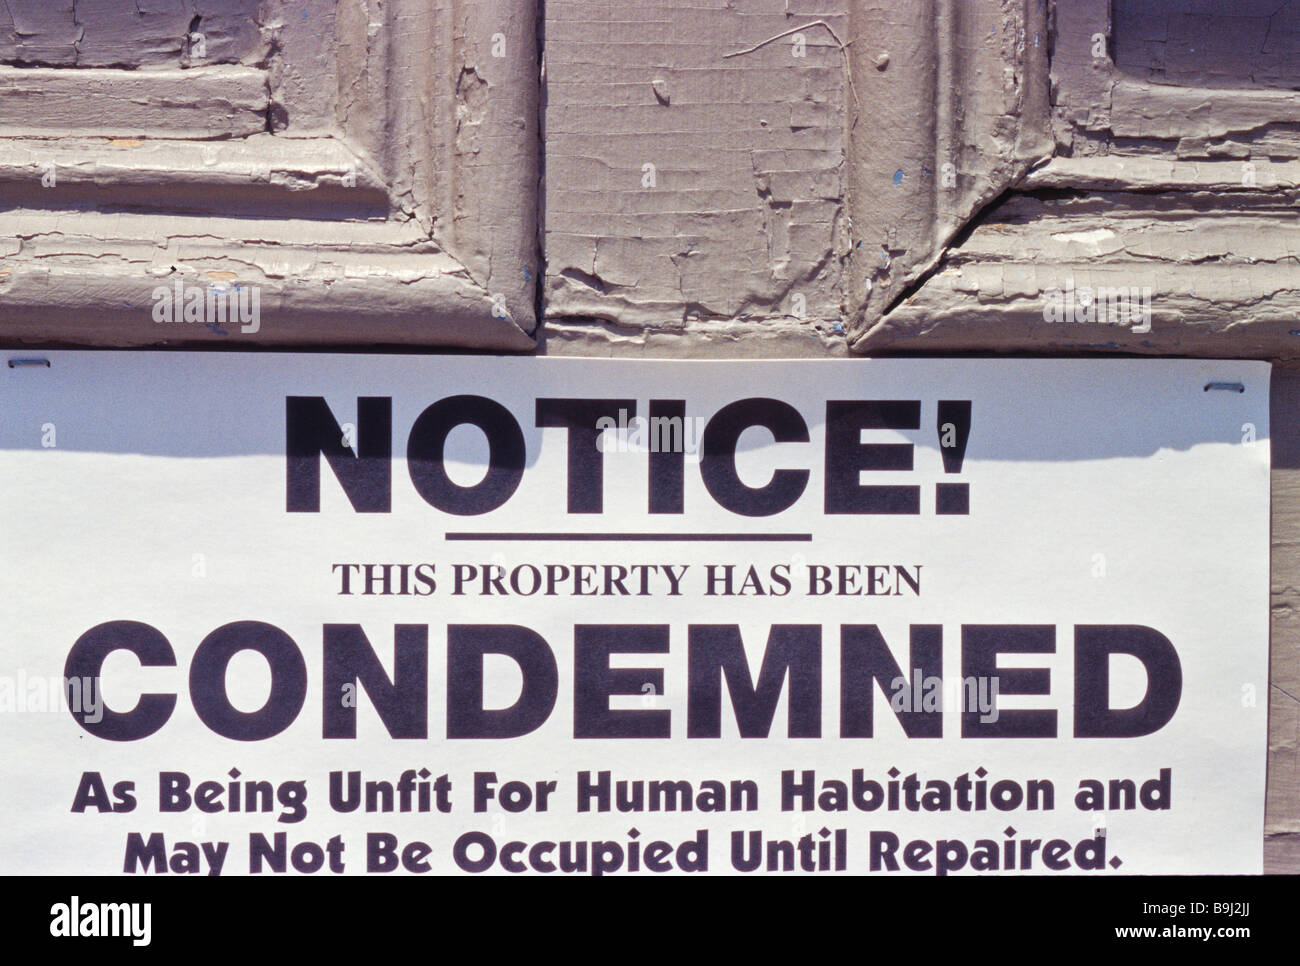 Notice this property has been condemned as being unfit for